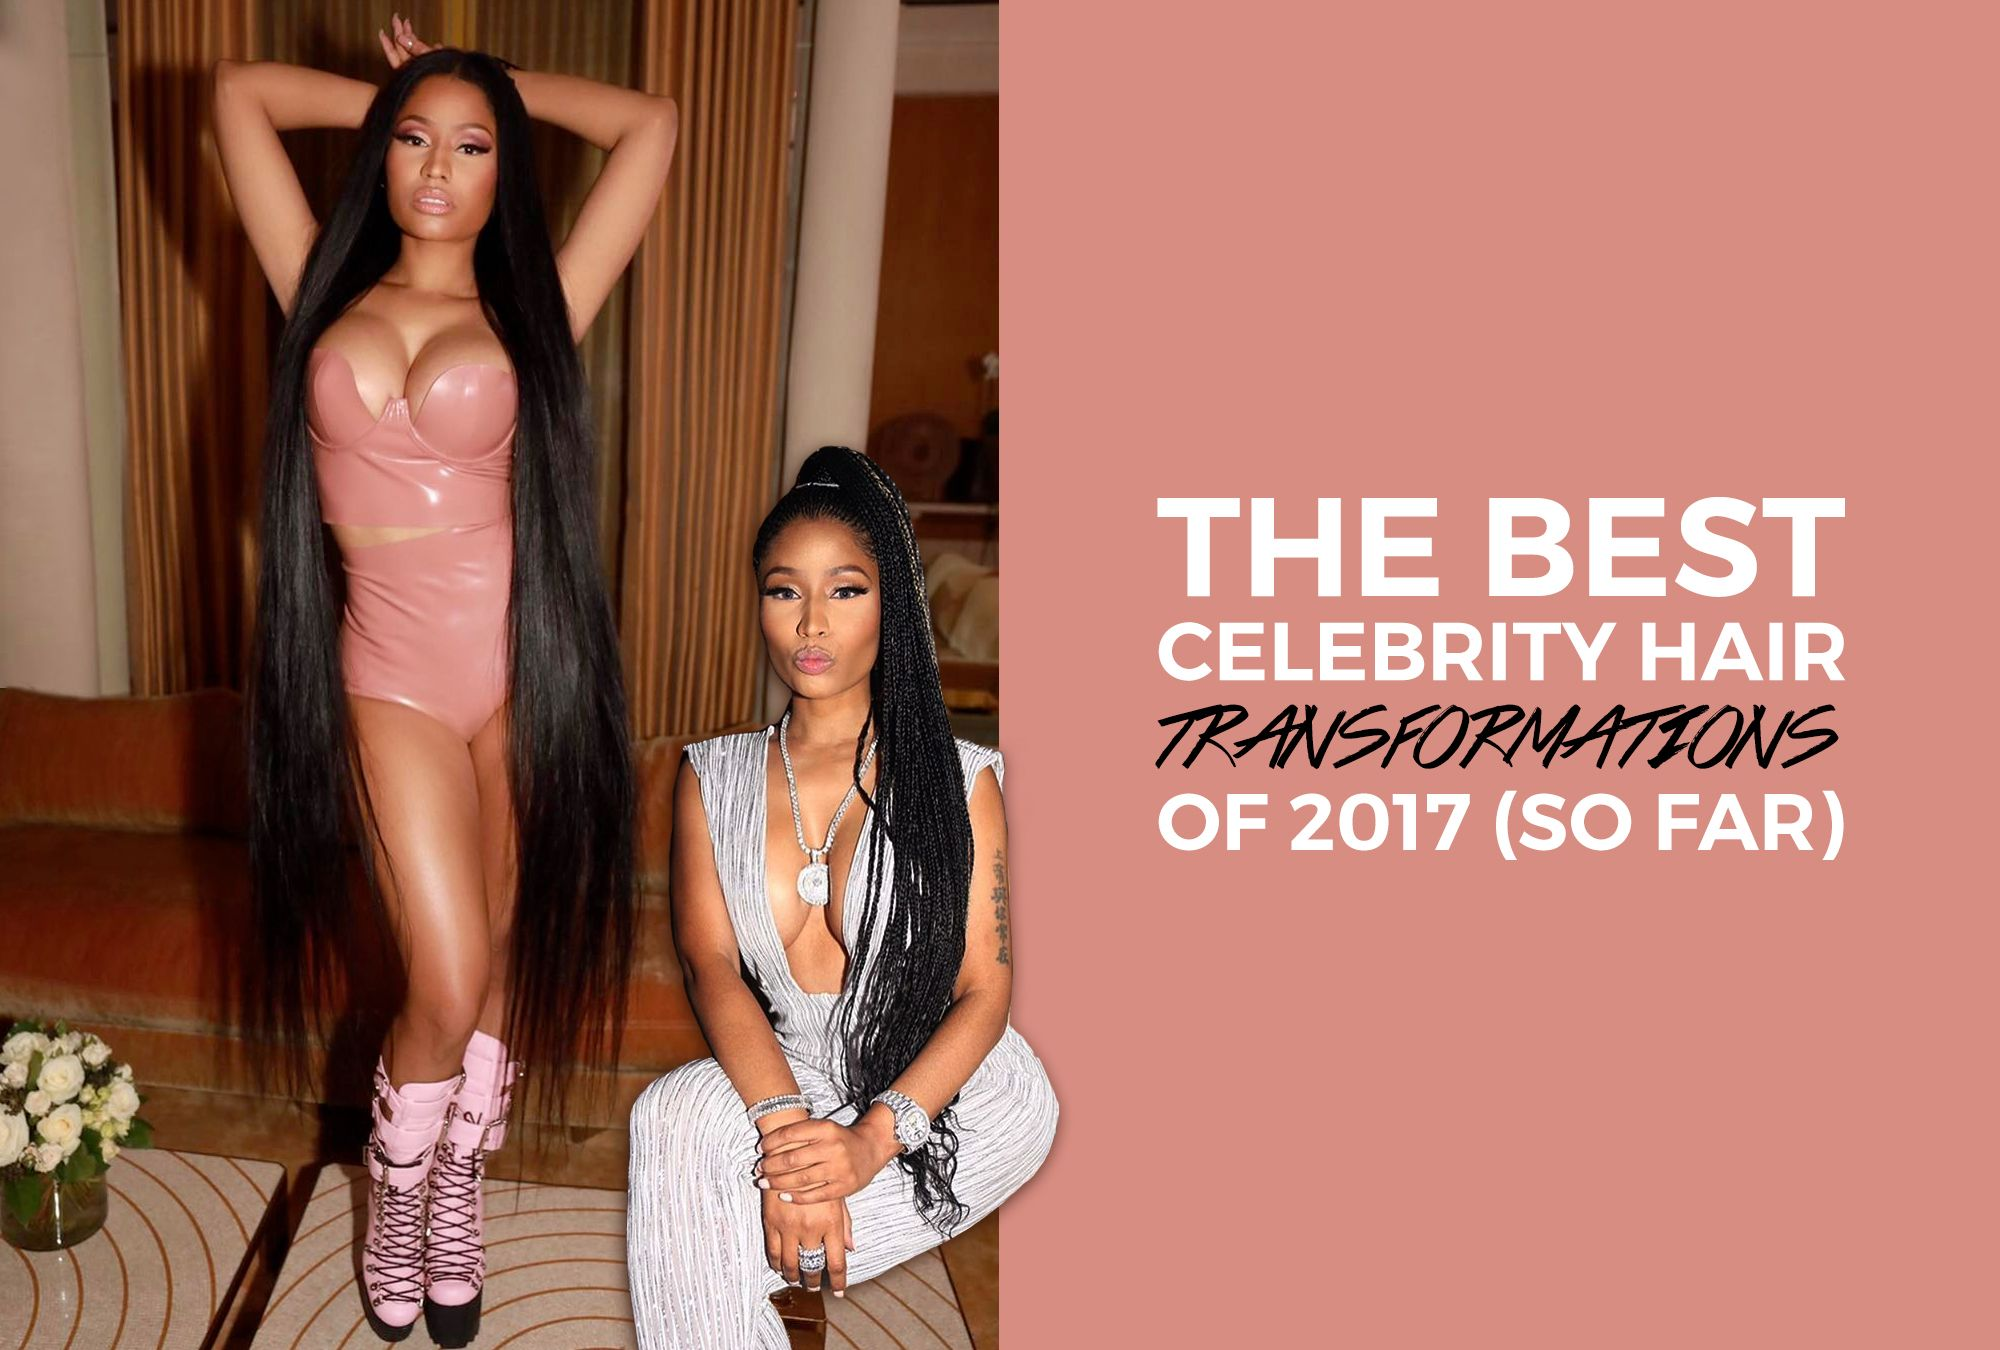 The Best Celebrity Hair Transformations of 2017 (So Far)